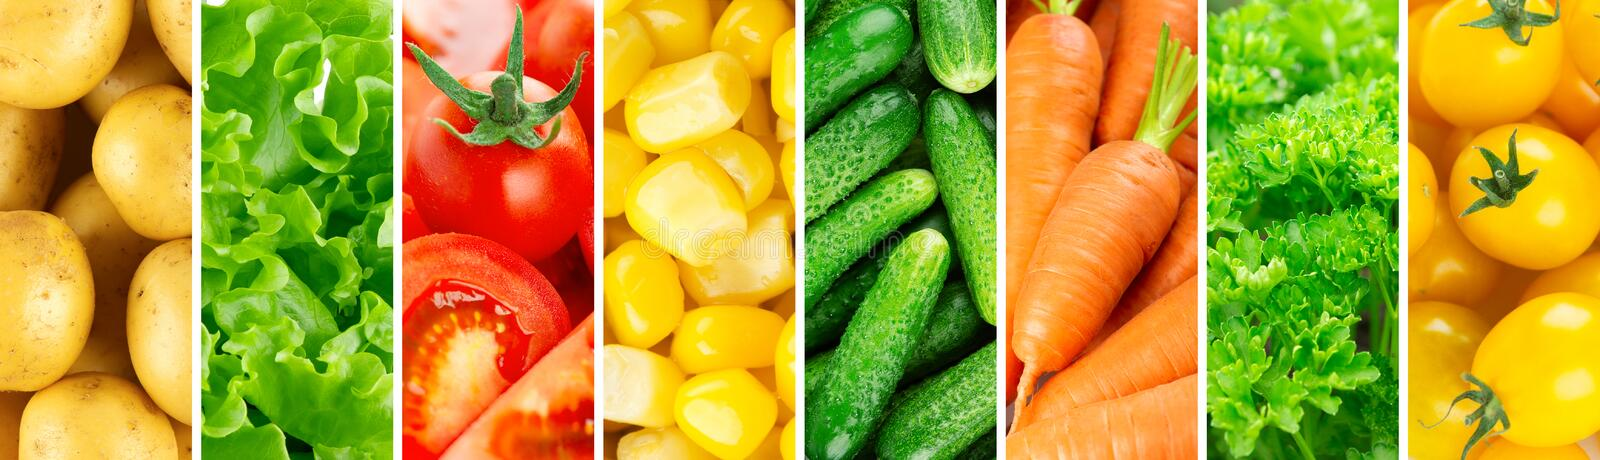 Background of vegetables. Fresh food royalty free stock photos